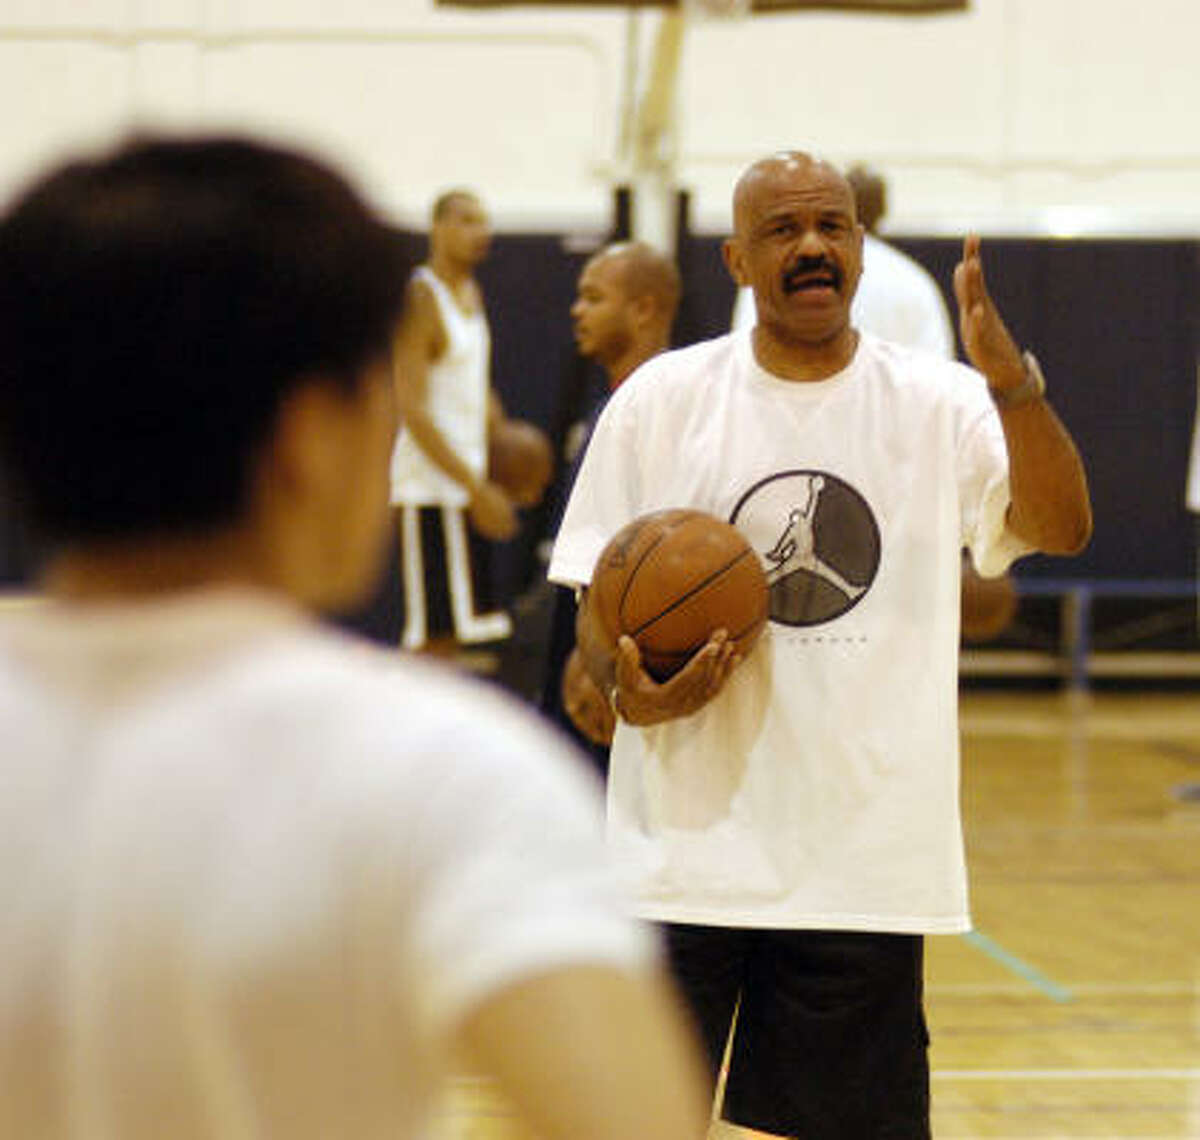 Former Cavaliers coach John Lucas, seen here in 2003, pulls no punches when stressing basics at his summer camp.